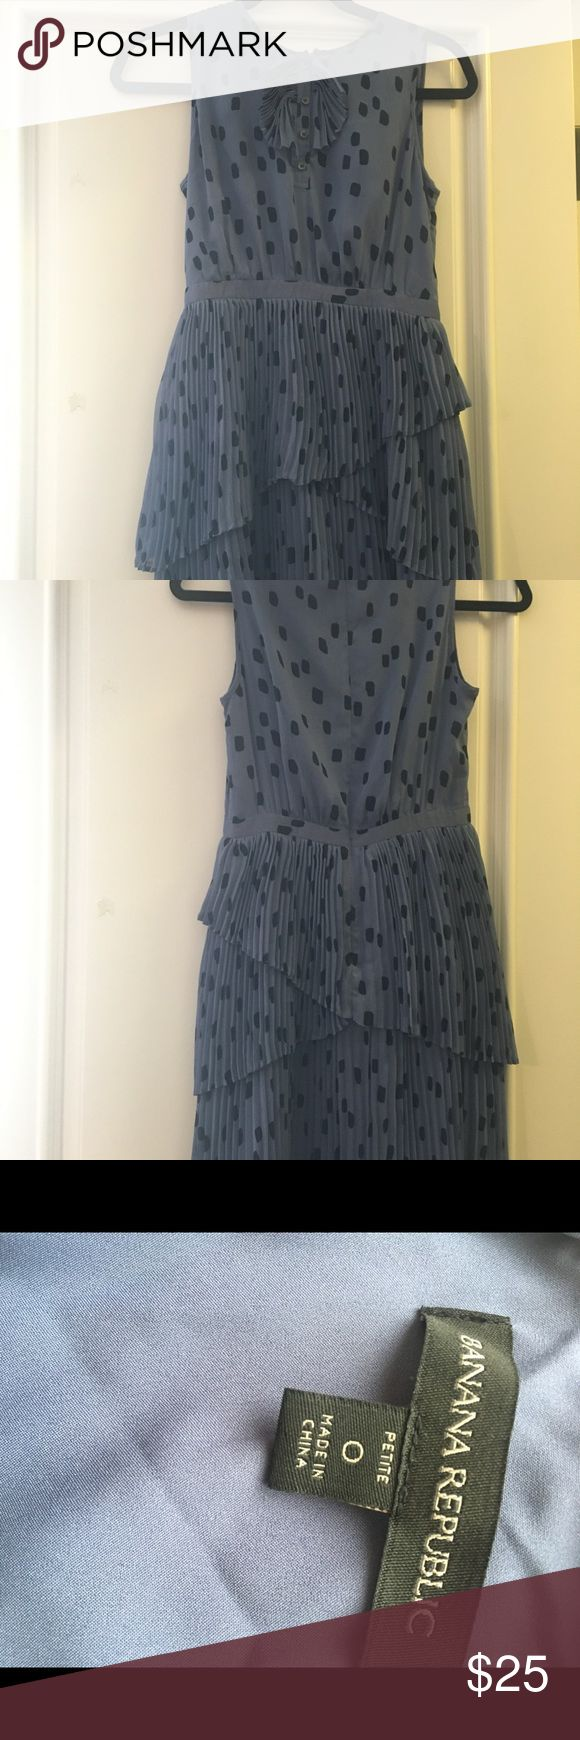 Banana Republic petite dress Blue polka dot dress with pretty pleated details. Gently worn. Tag says dry clean but dress has been washed successfully on gentle cycle/cold water Banana Republic Dresses